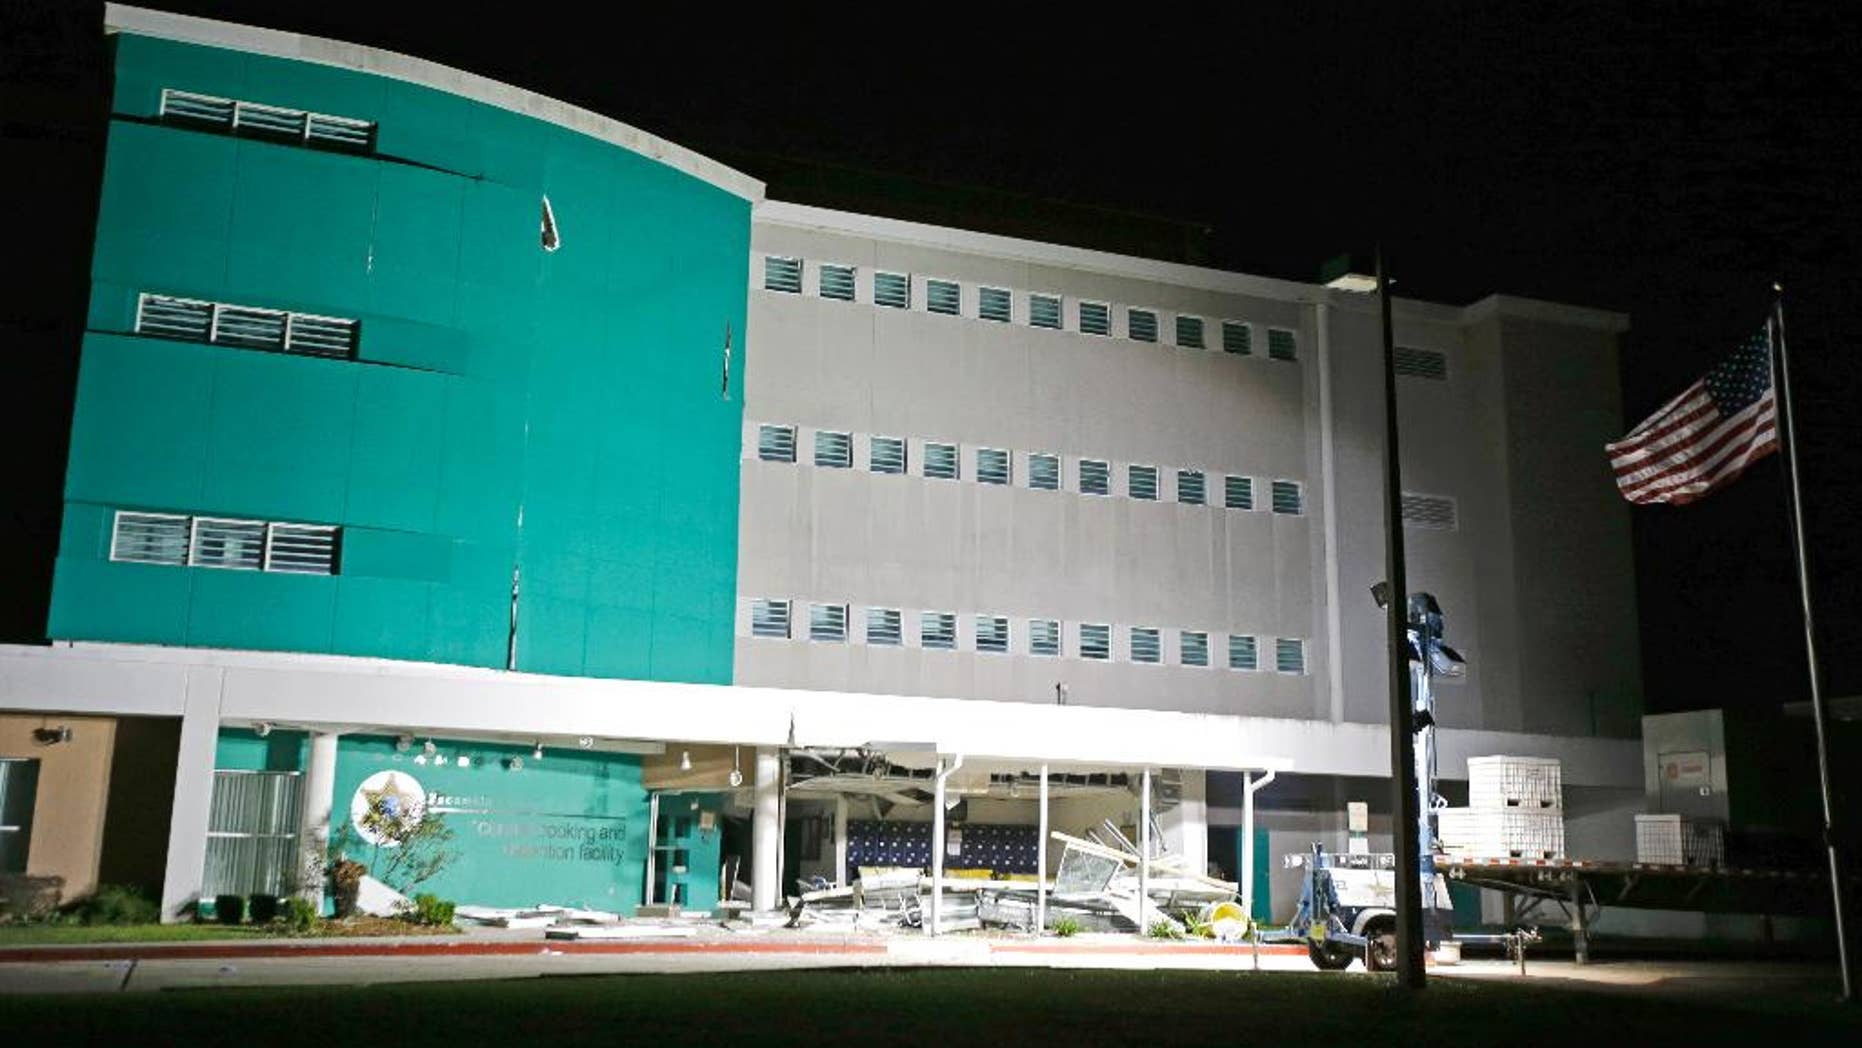 Debris from an explosion at the Escambia County Jail is scattered at the entrance to  the facility, Thursday, May 1, 2014, in Pensacola, Fla. Two inmates were killed and more than 100 others injured in the explosion according to an Escambia County spokeswoman. (AP Photo/John Raoux)